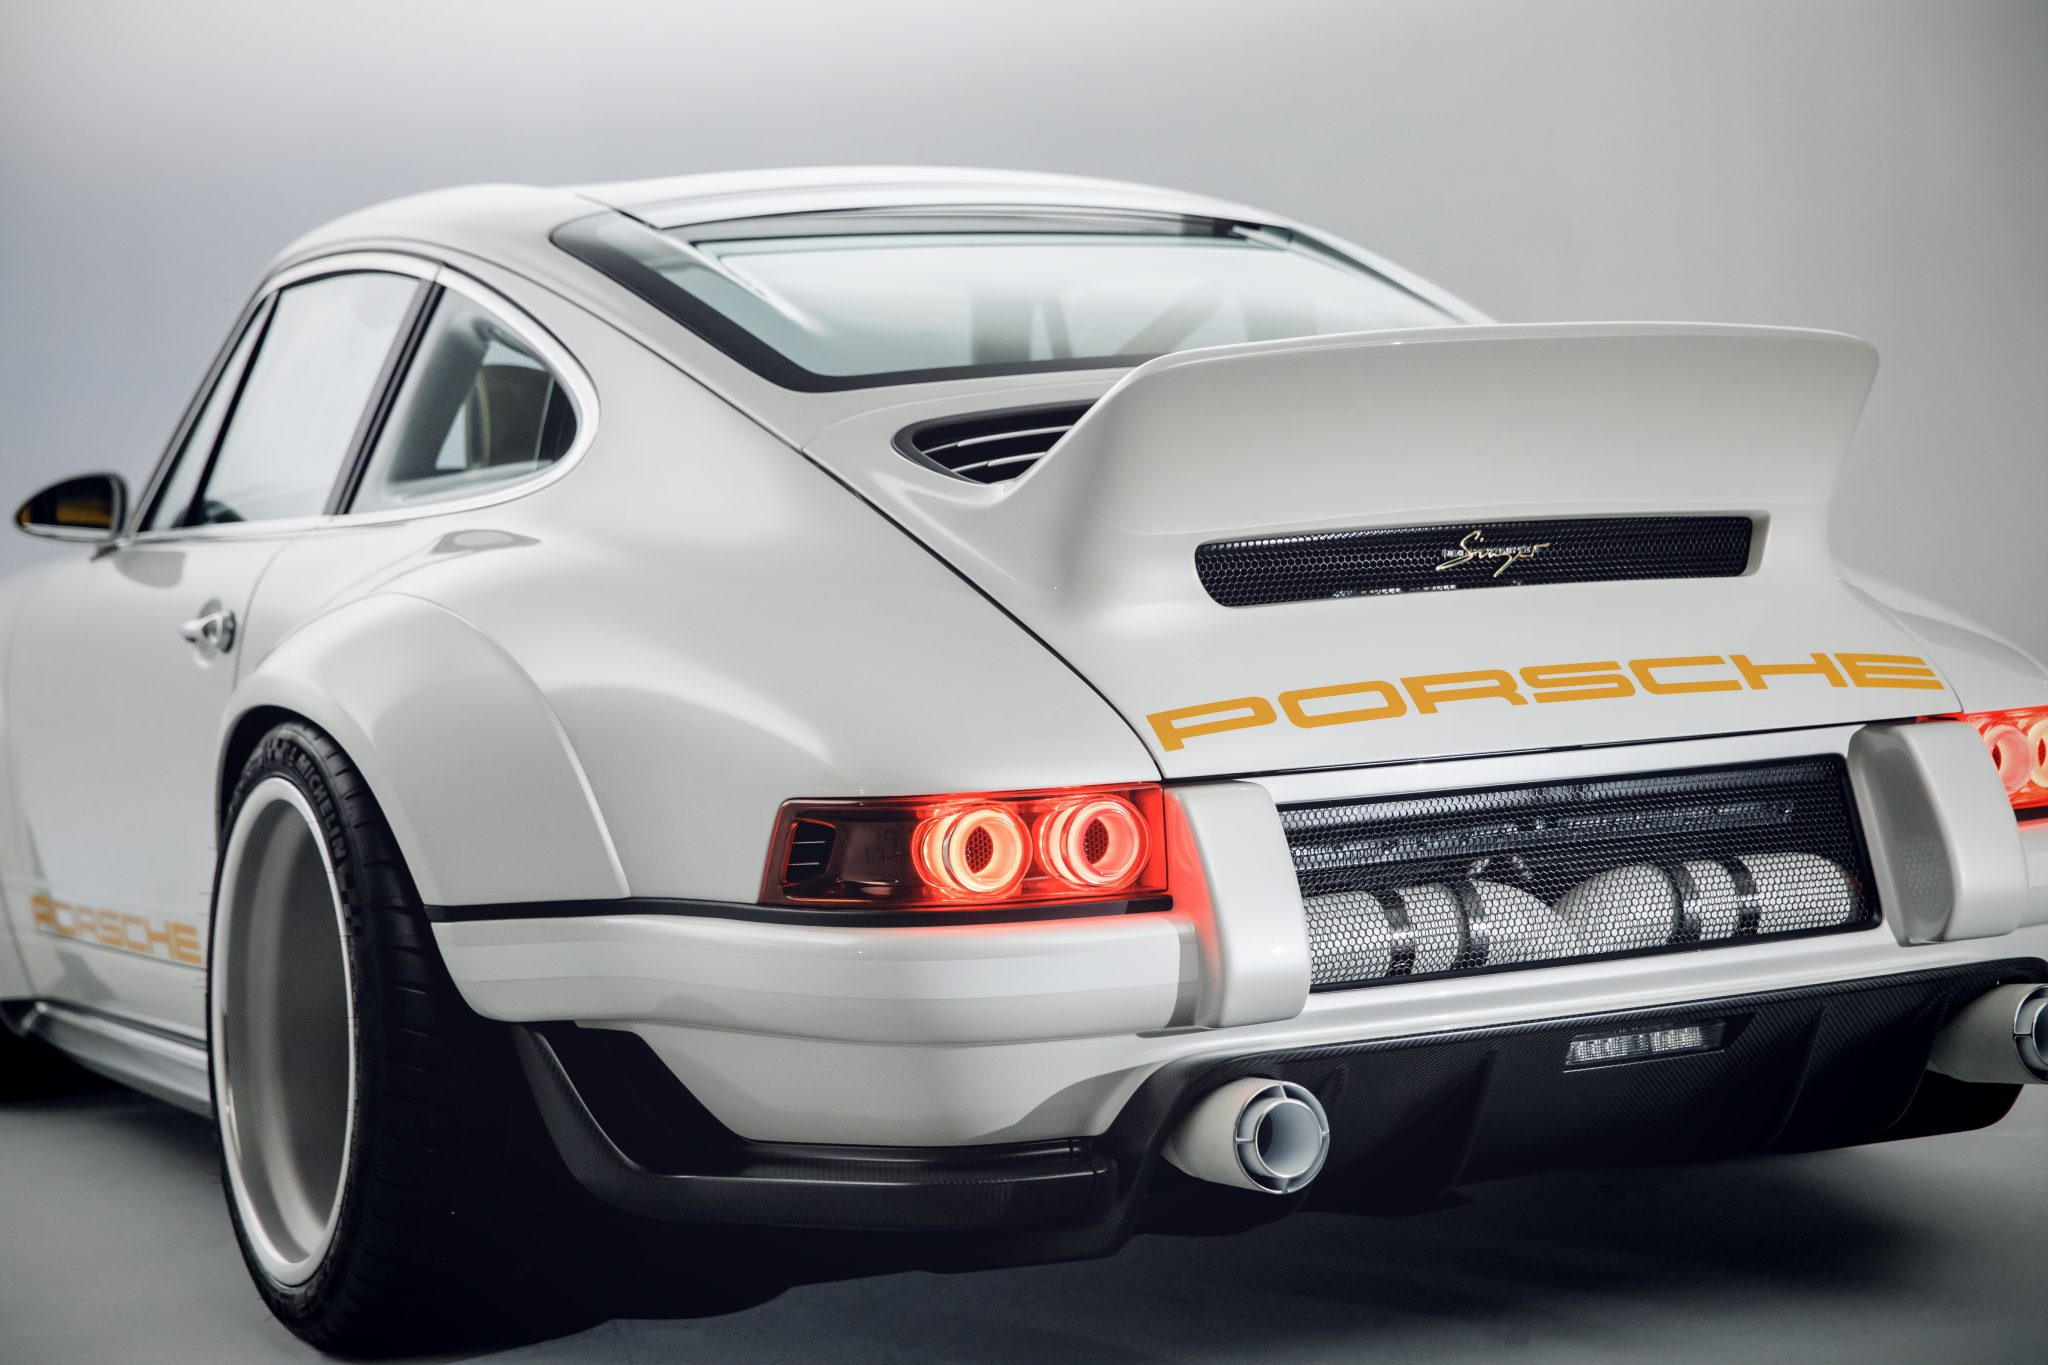 1989 Porsche 911 Reimagined by Singer Vehicle Design